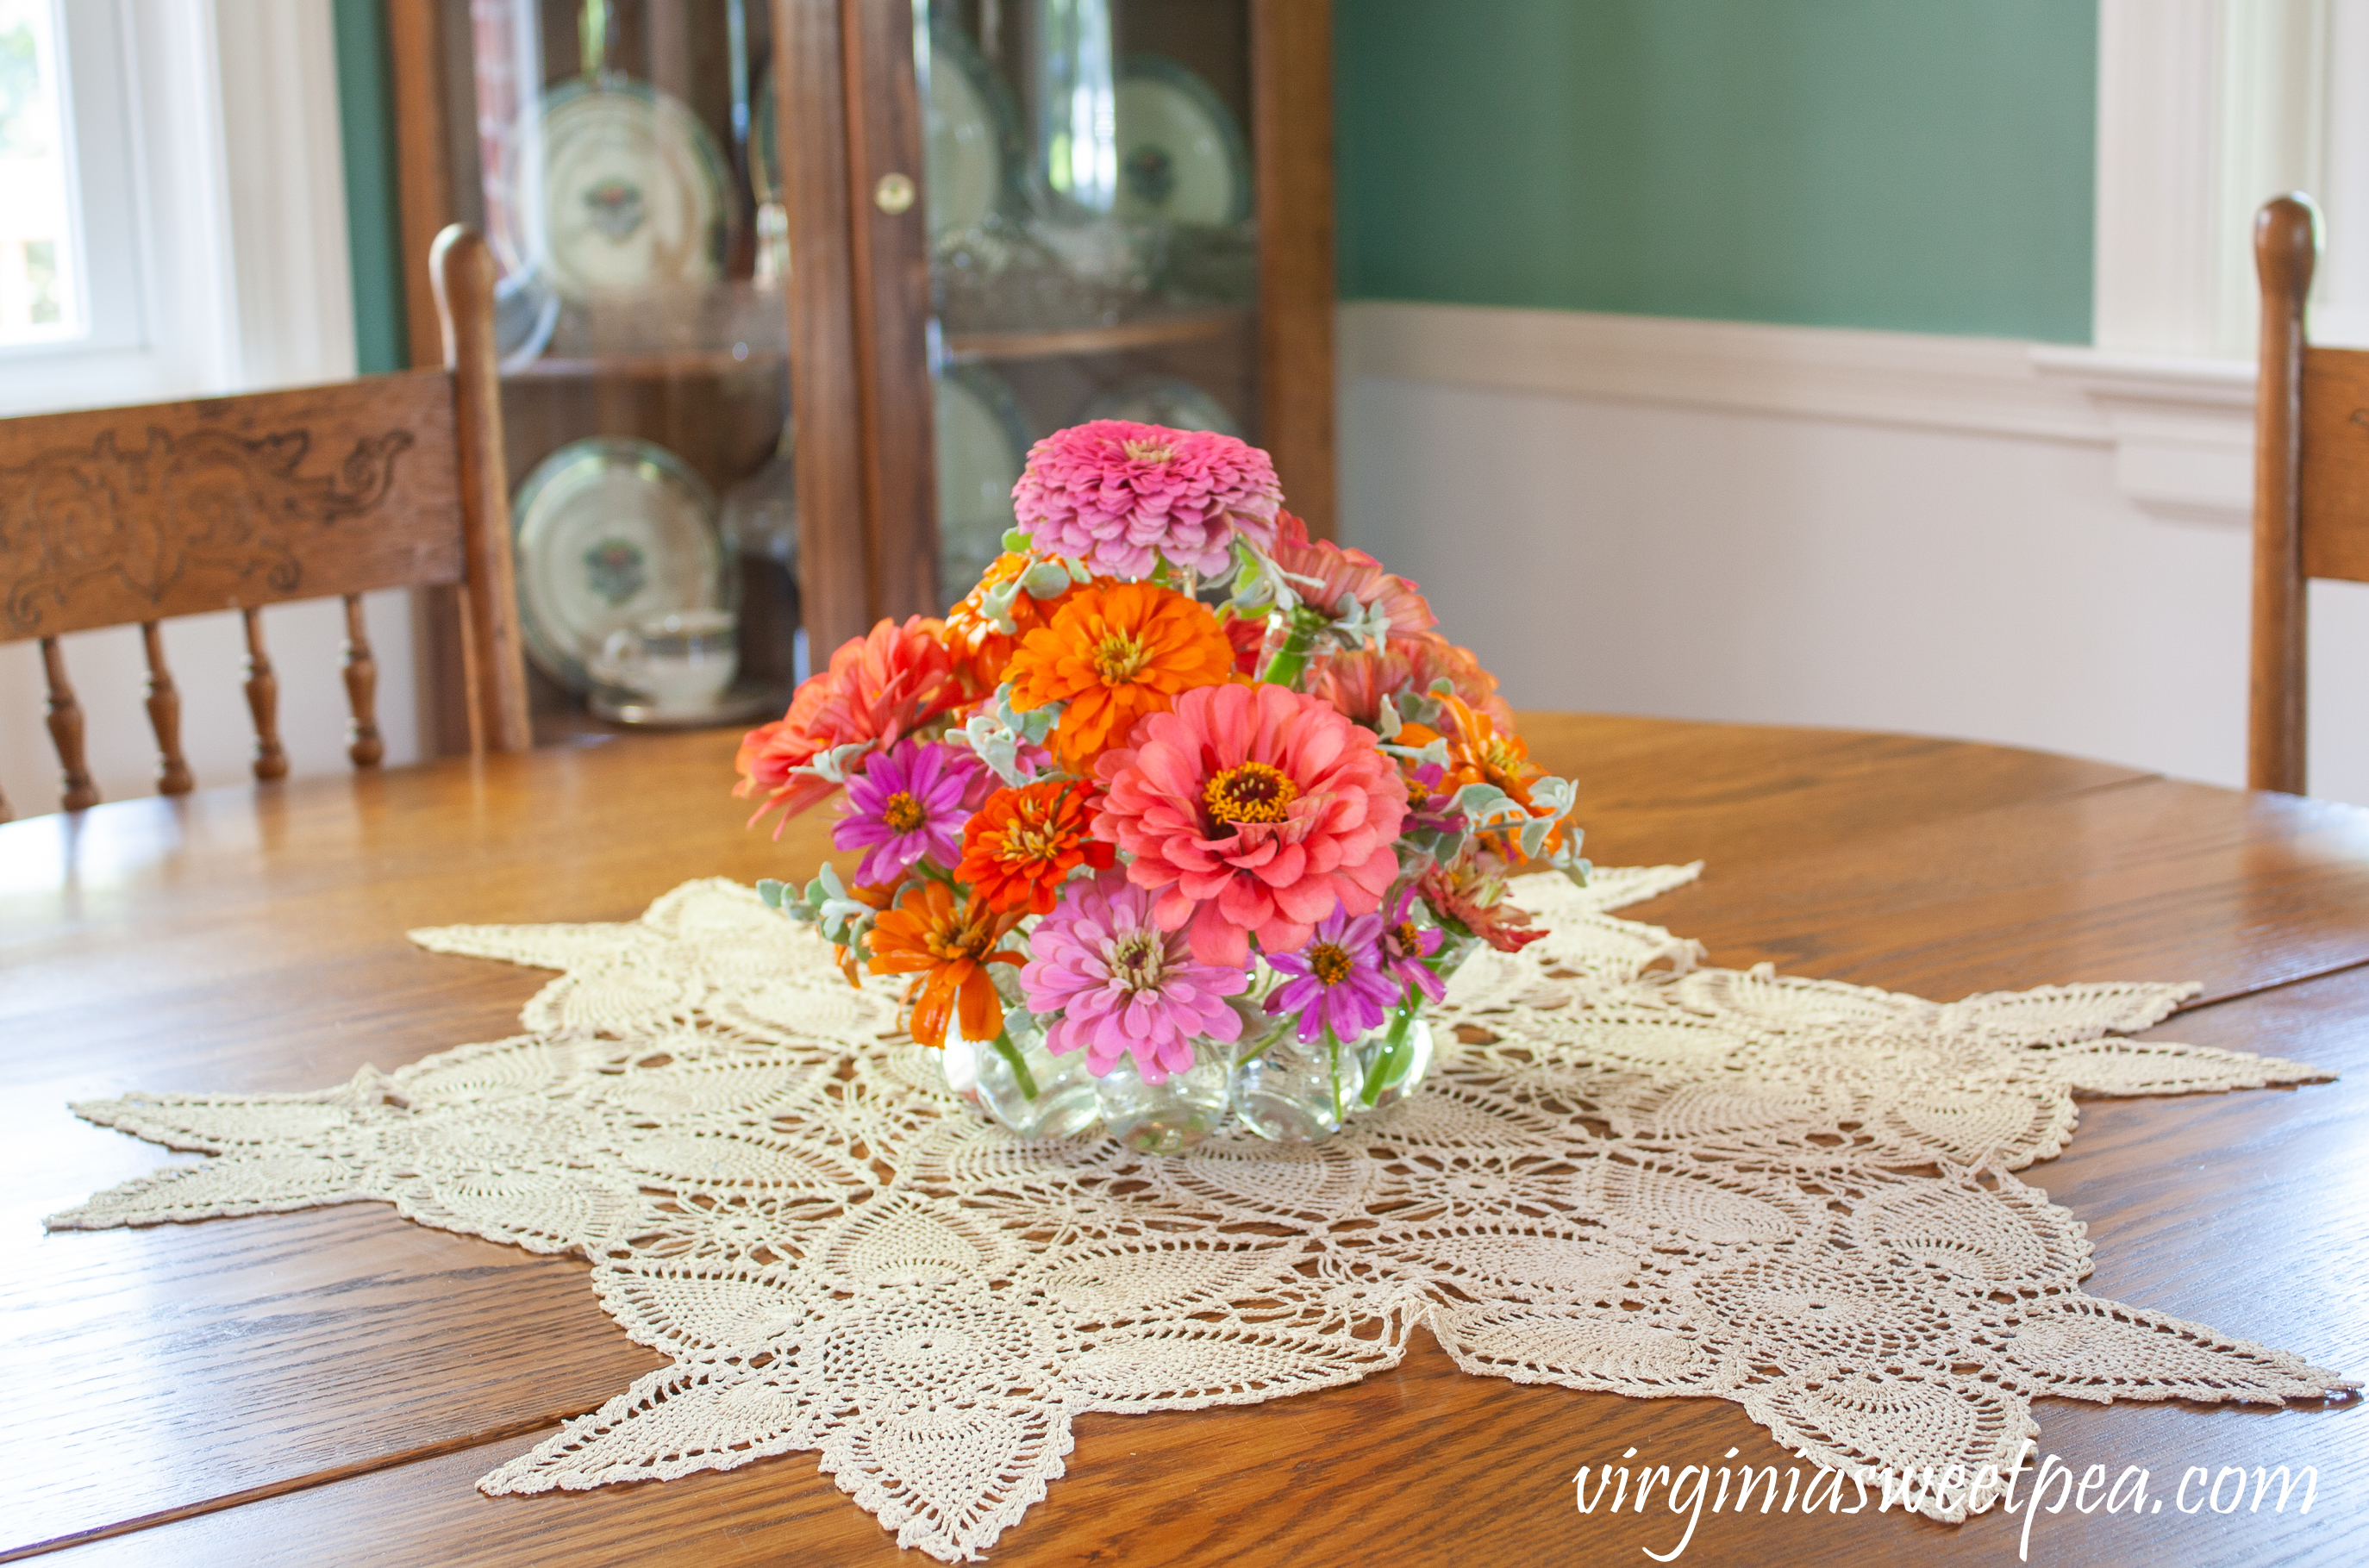 Summer flower arrangement with Zinnias on a dining room table.